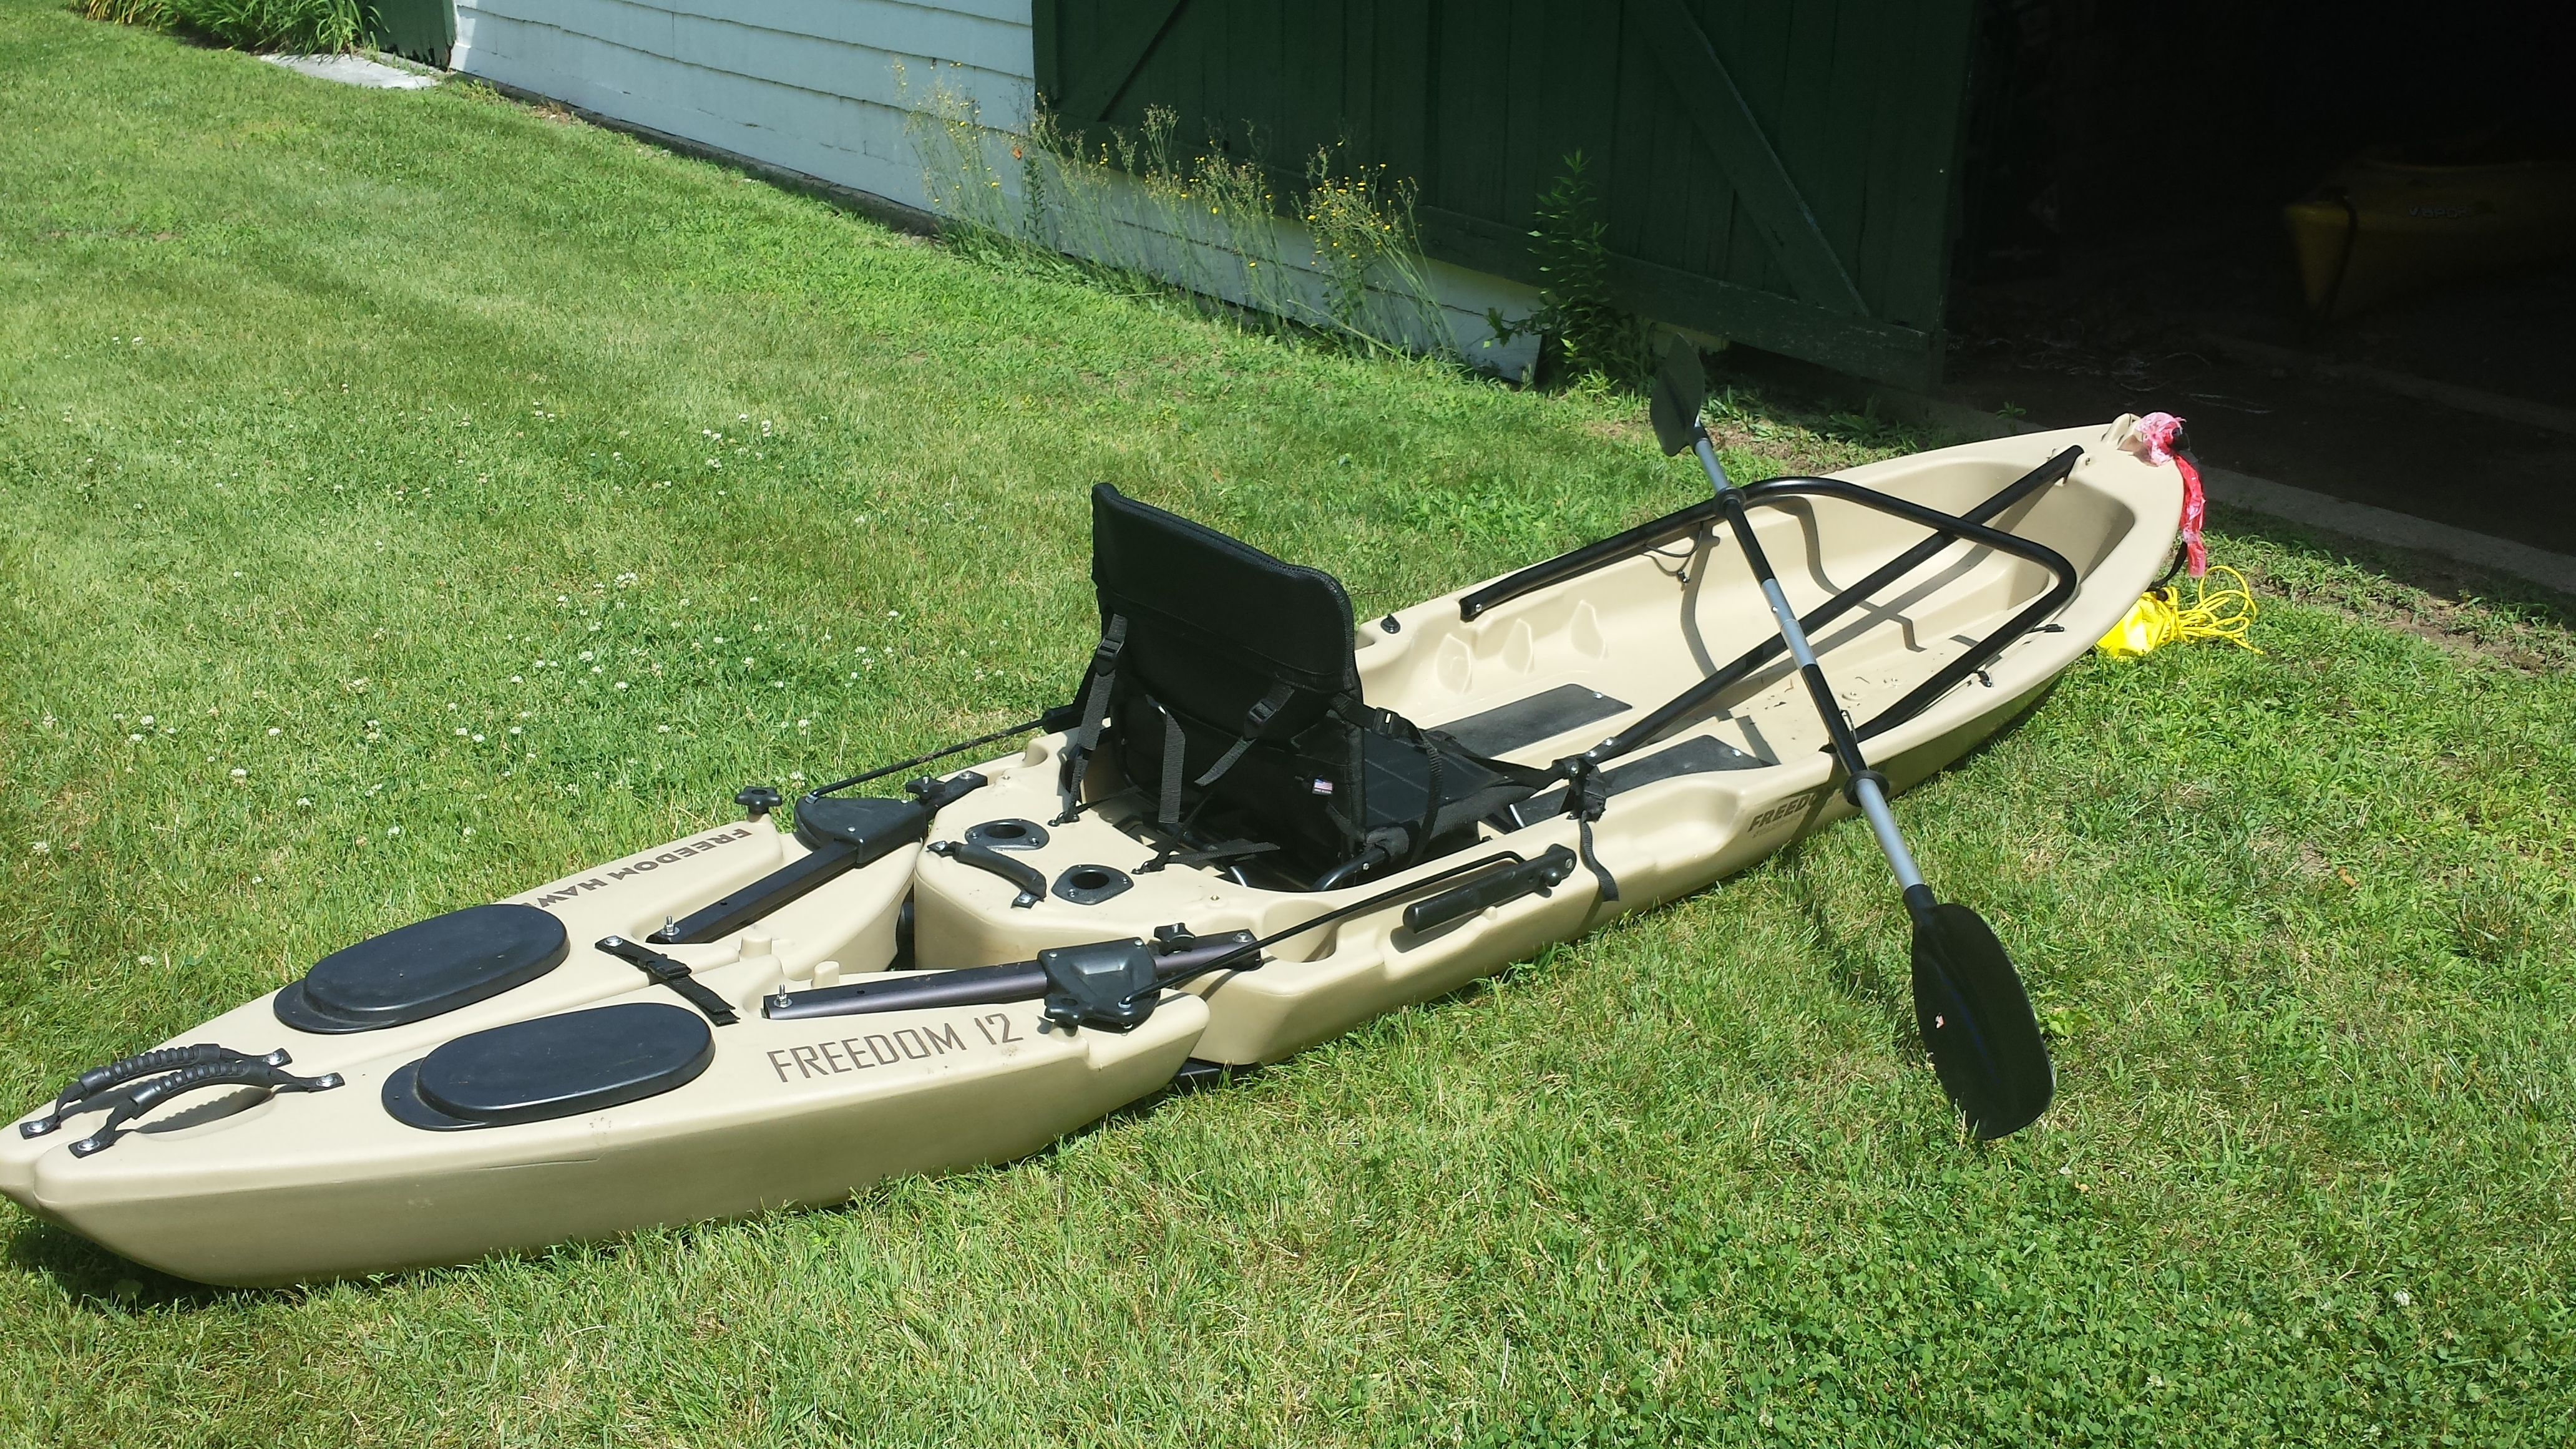 Freedom hawk 12 fishing kayak for sale kayaking and for Fishing kayaks for sale cheap